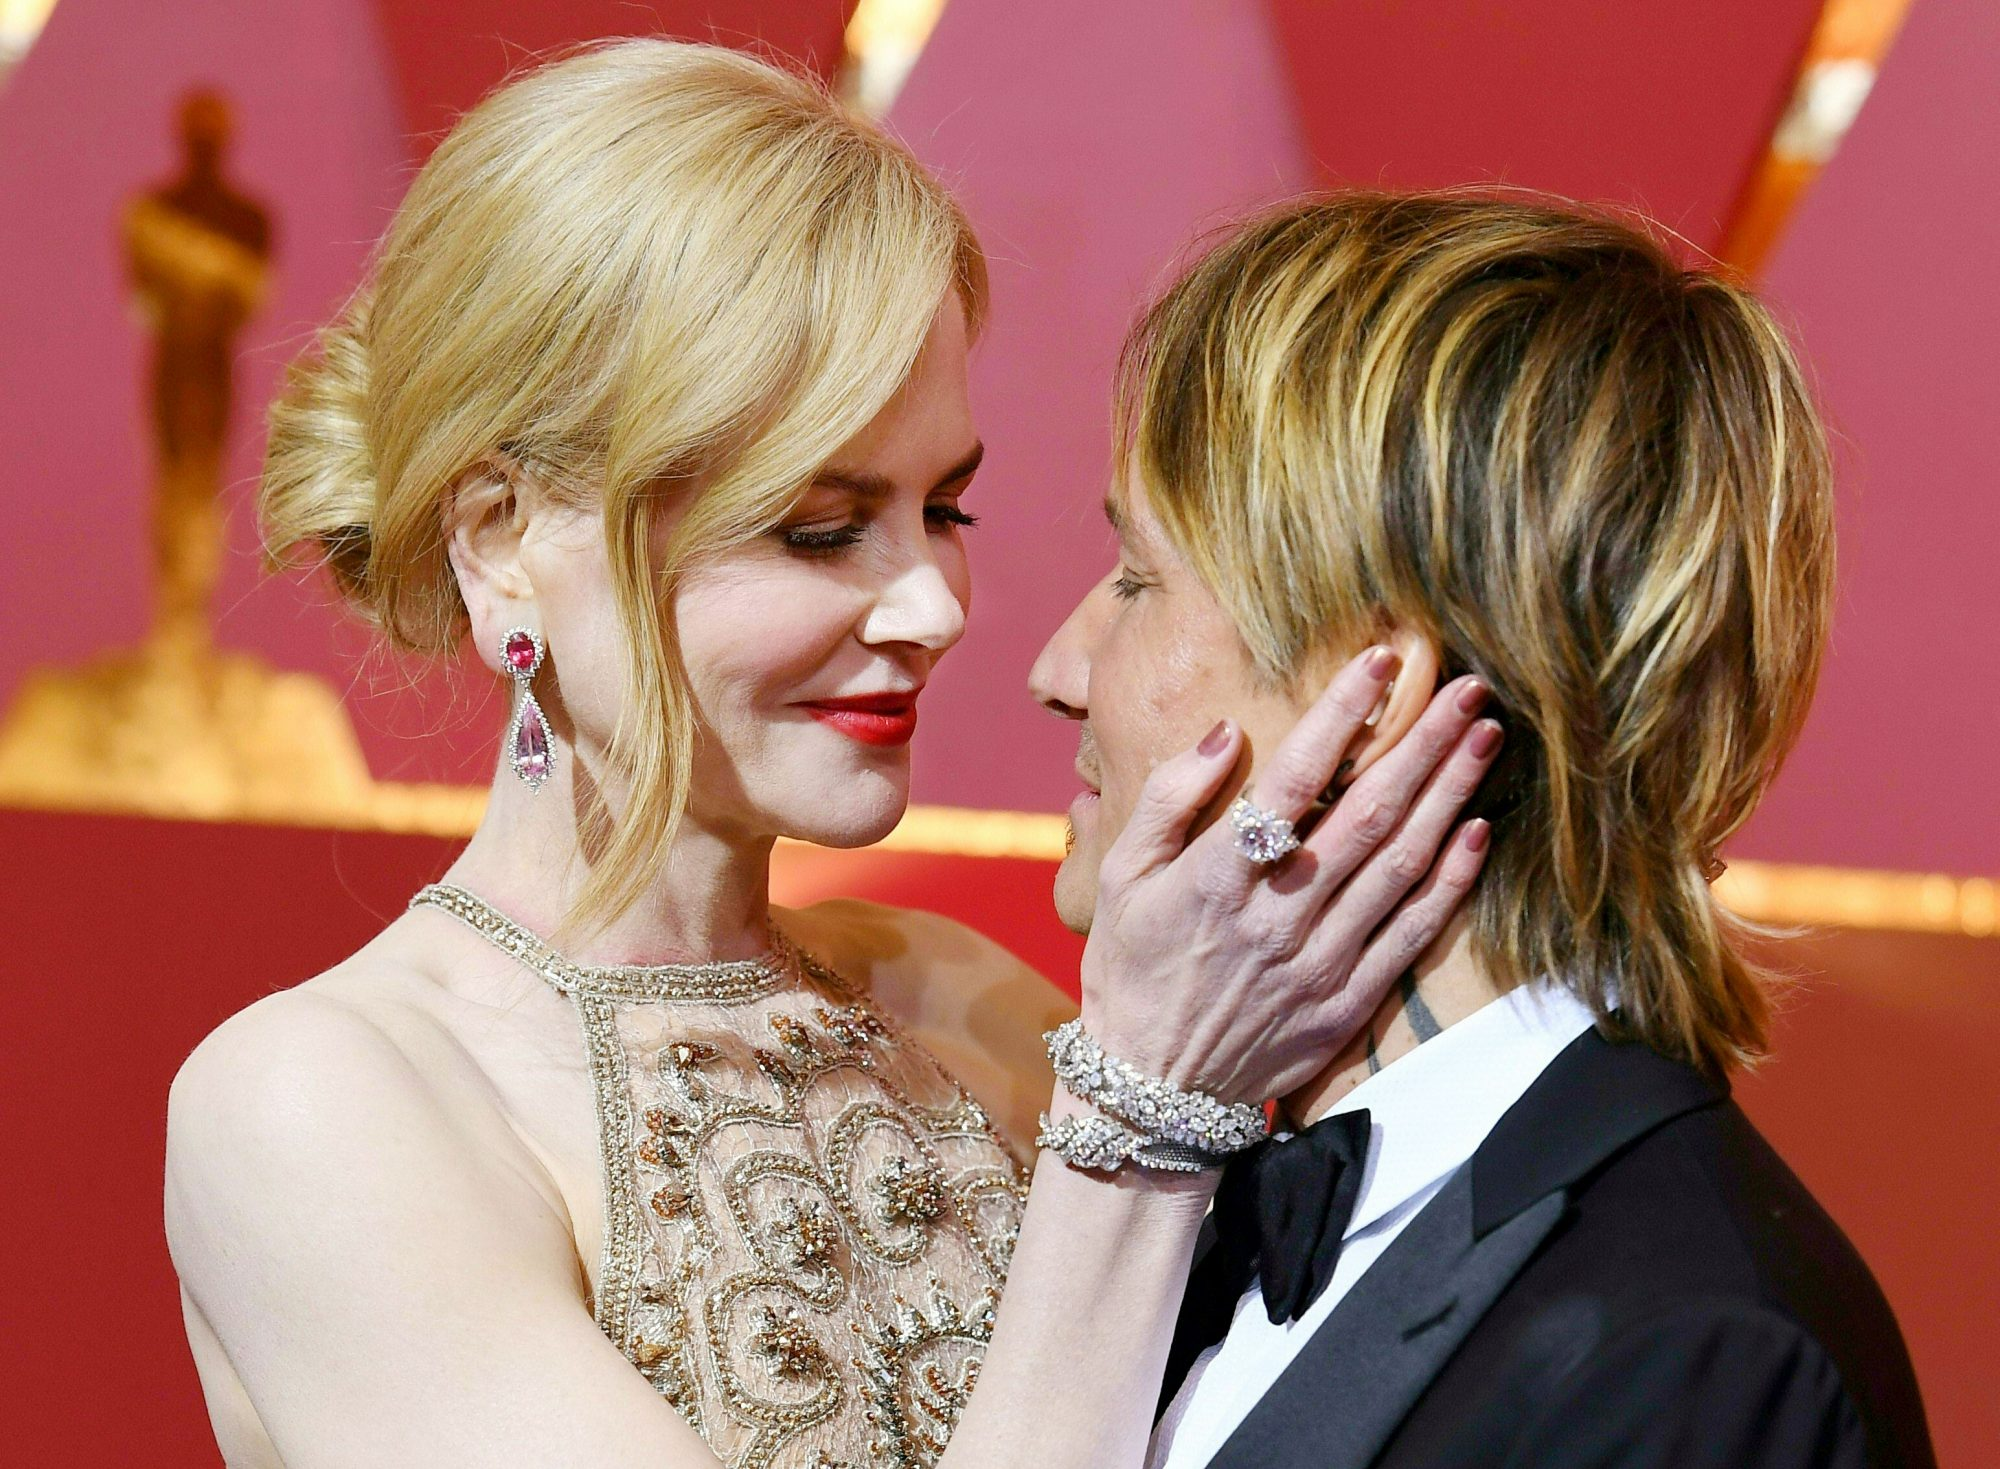 Nicole Kidman and Keith Urban Found Each Other at Just the Right Time